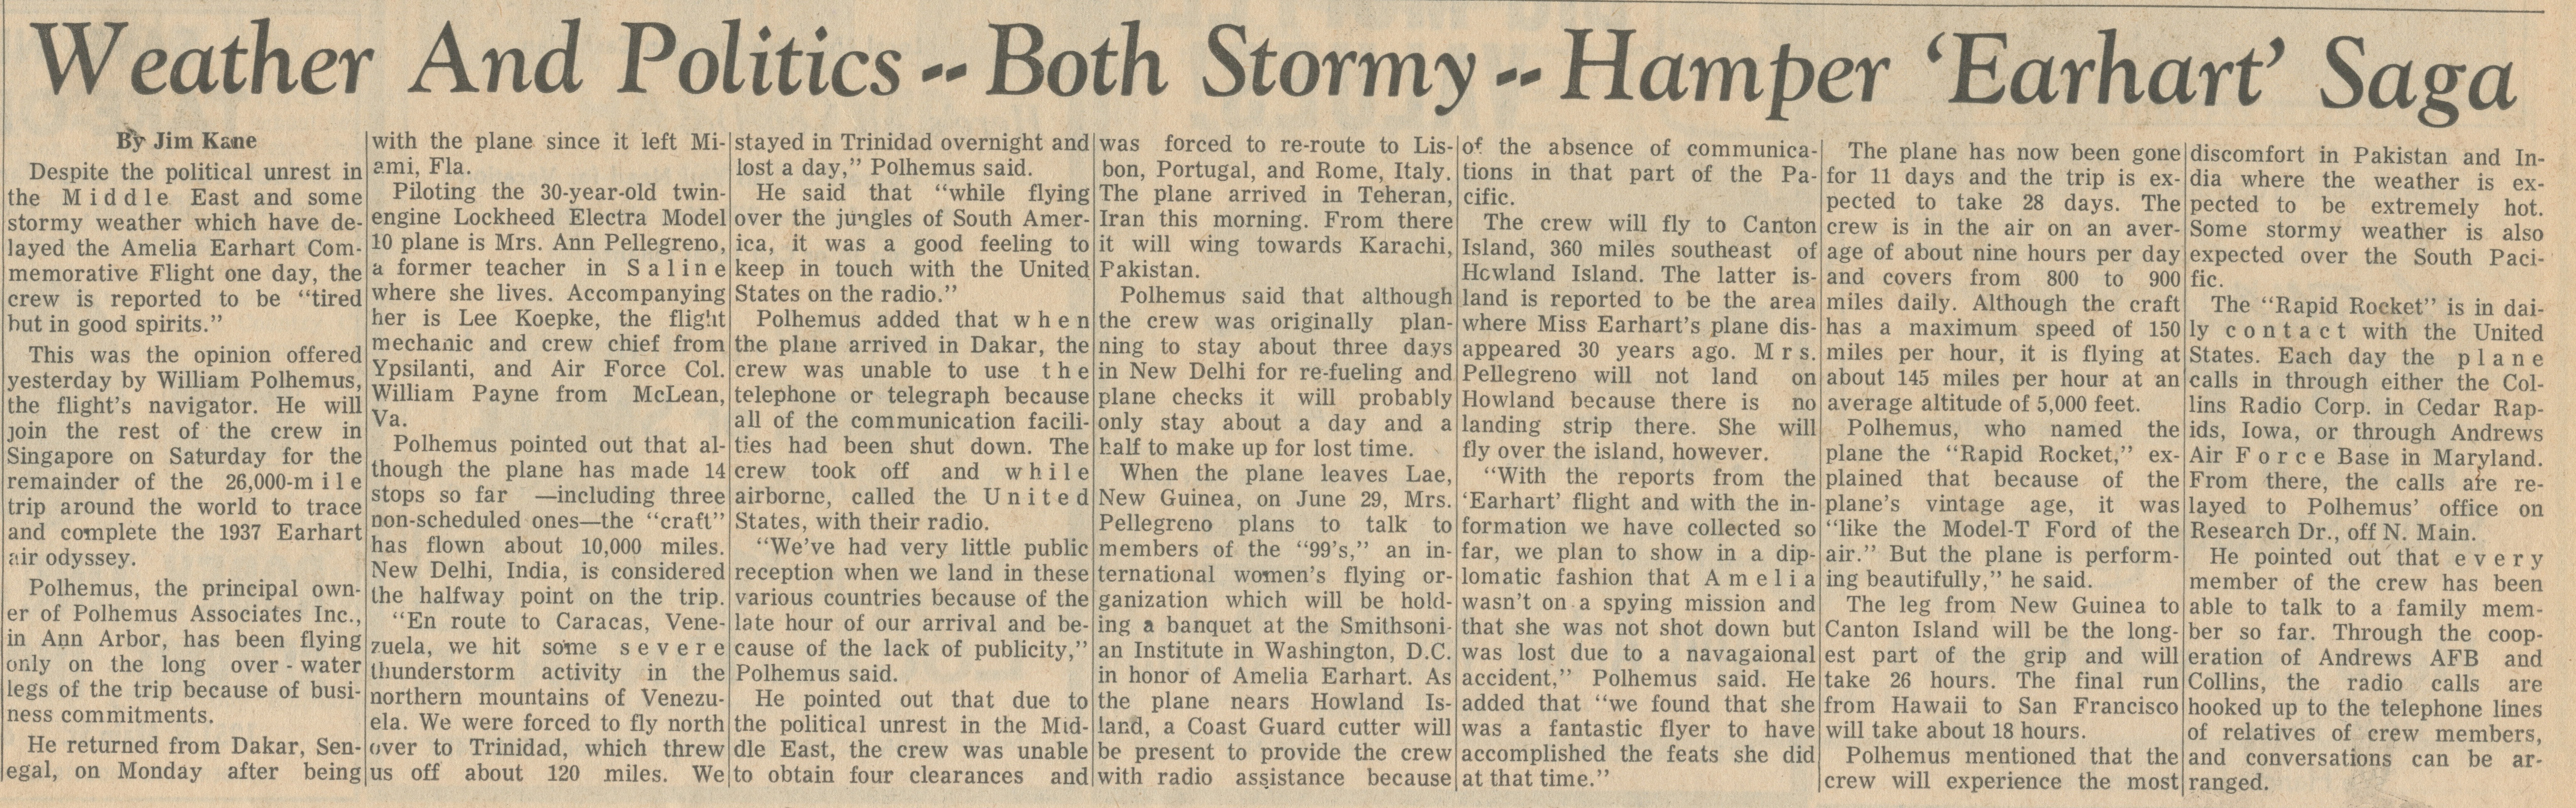 Weather And Politics -- Both Stormy -- Hamper 'Earhart' Saga image